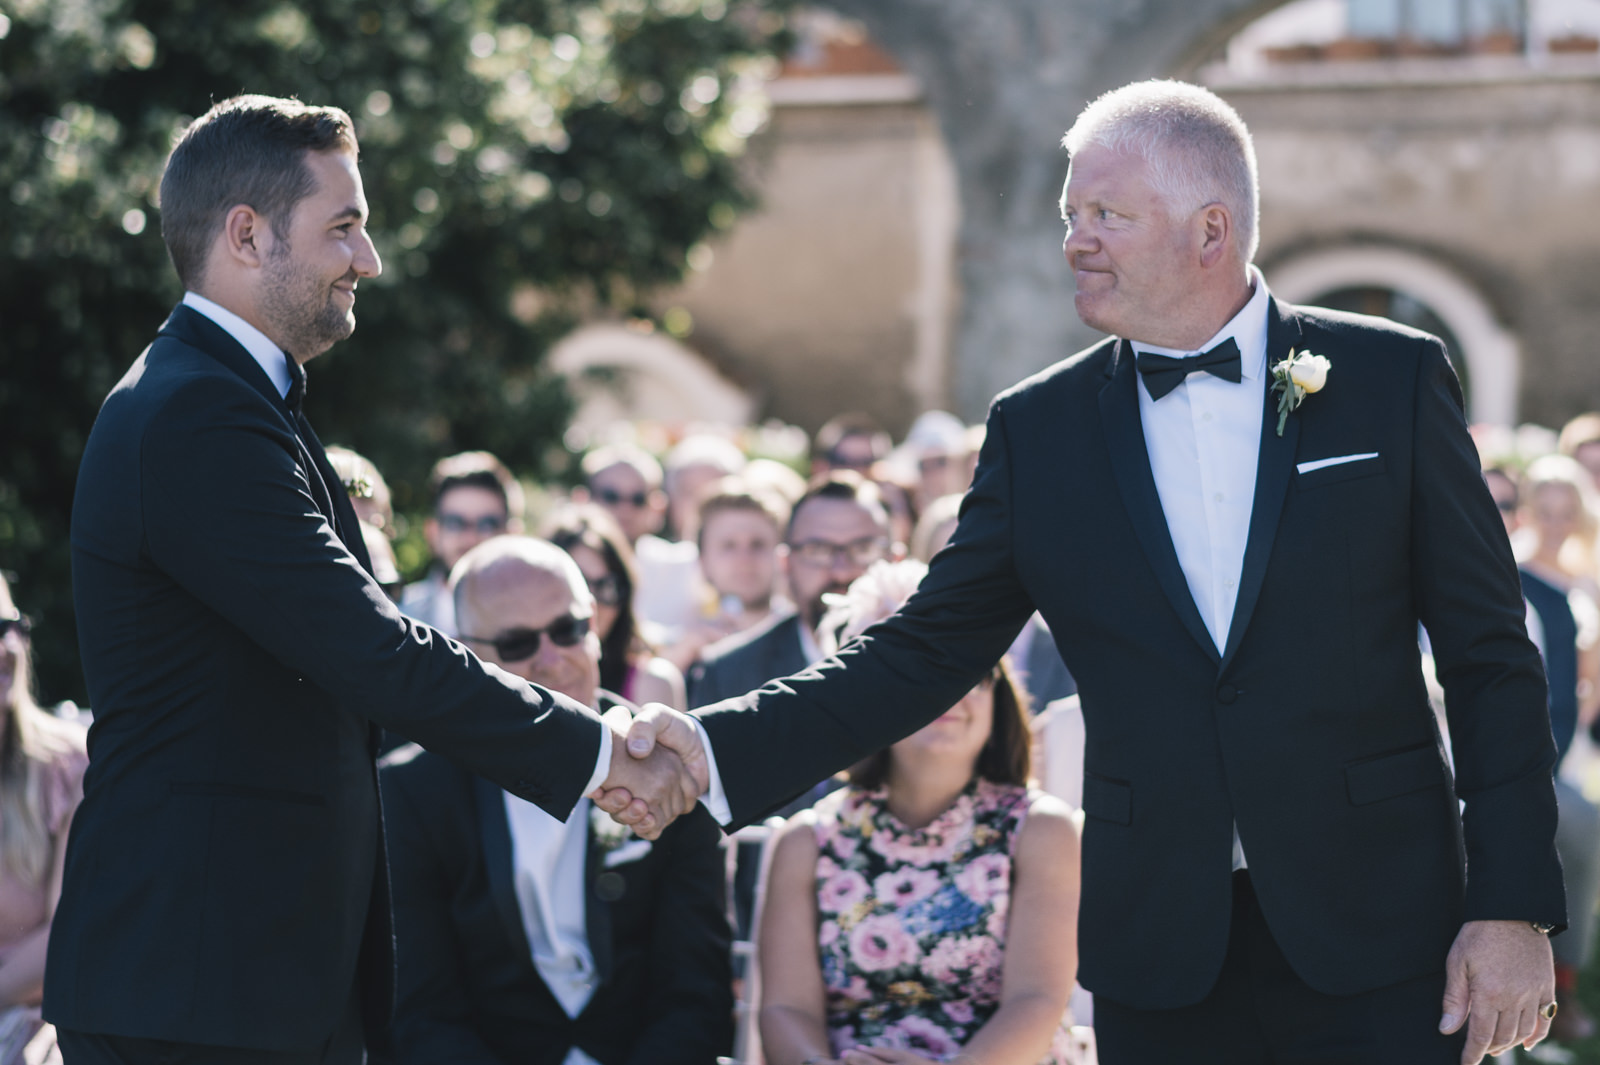 the groom shaking hands with the bride's father